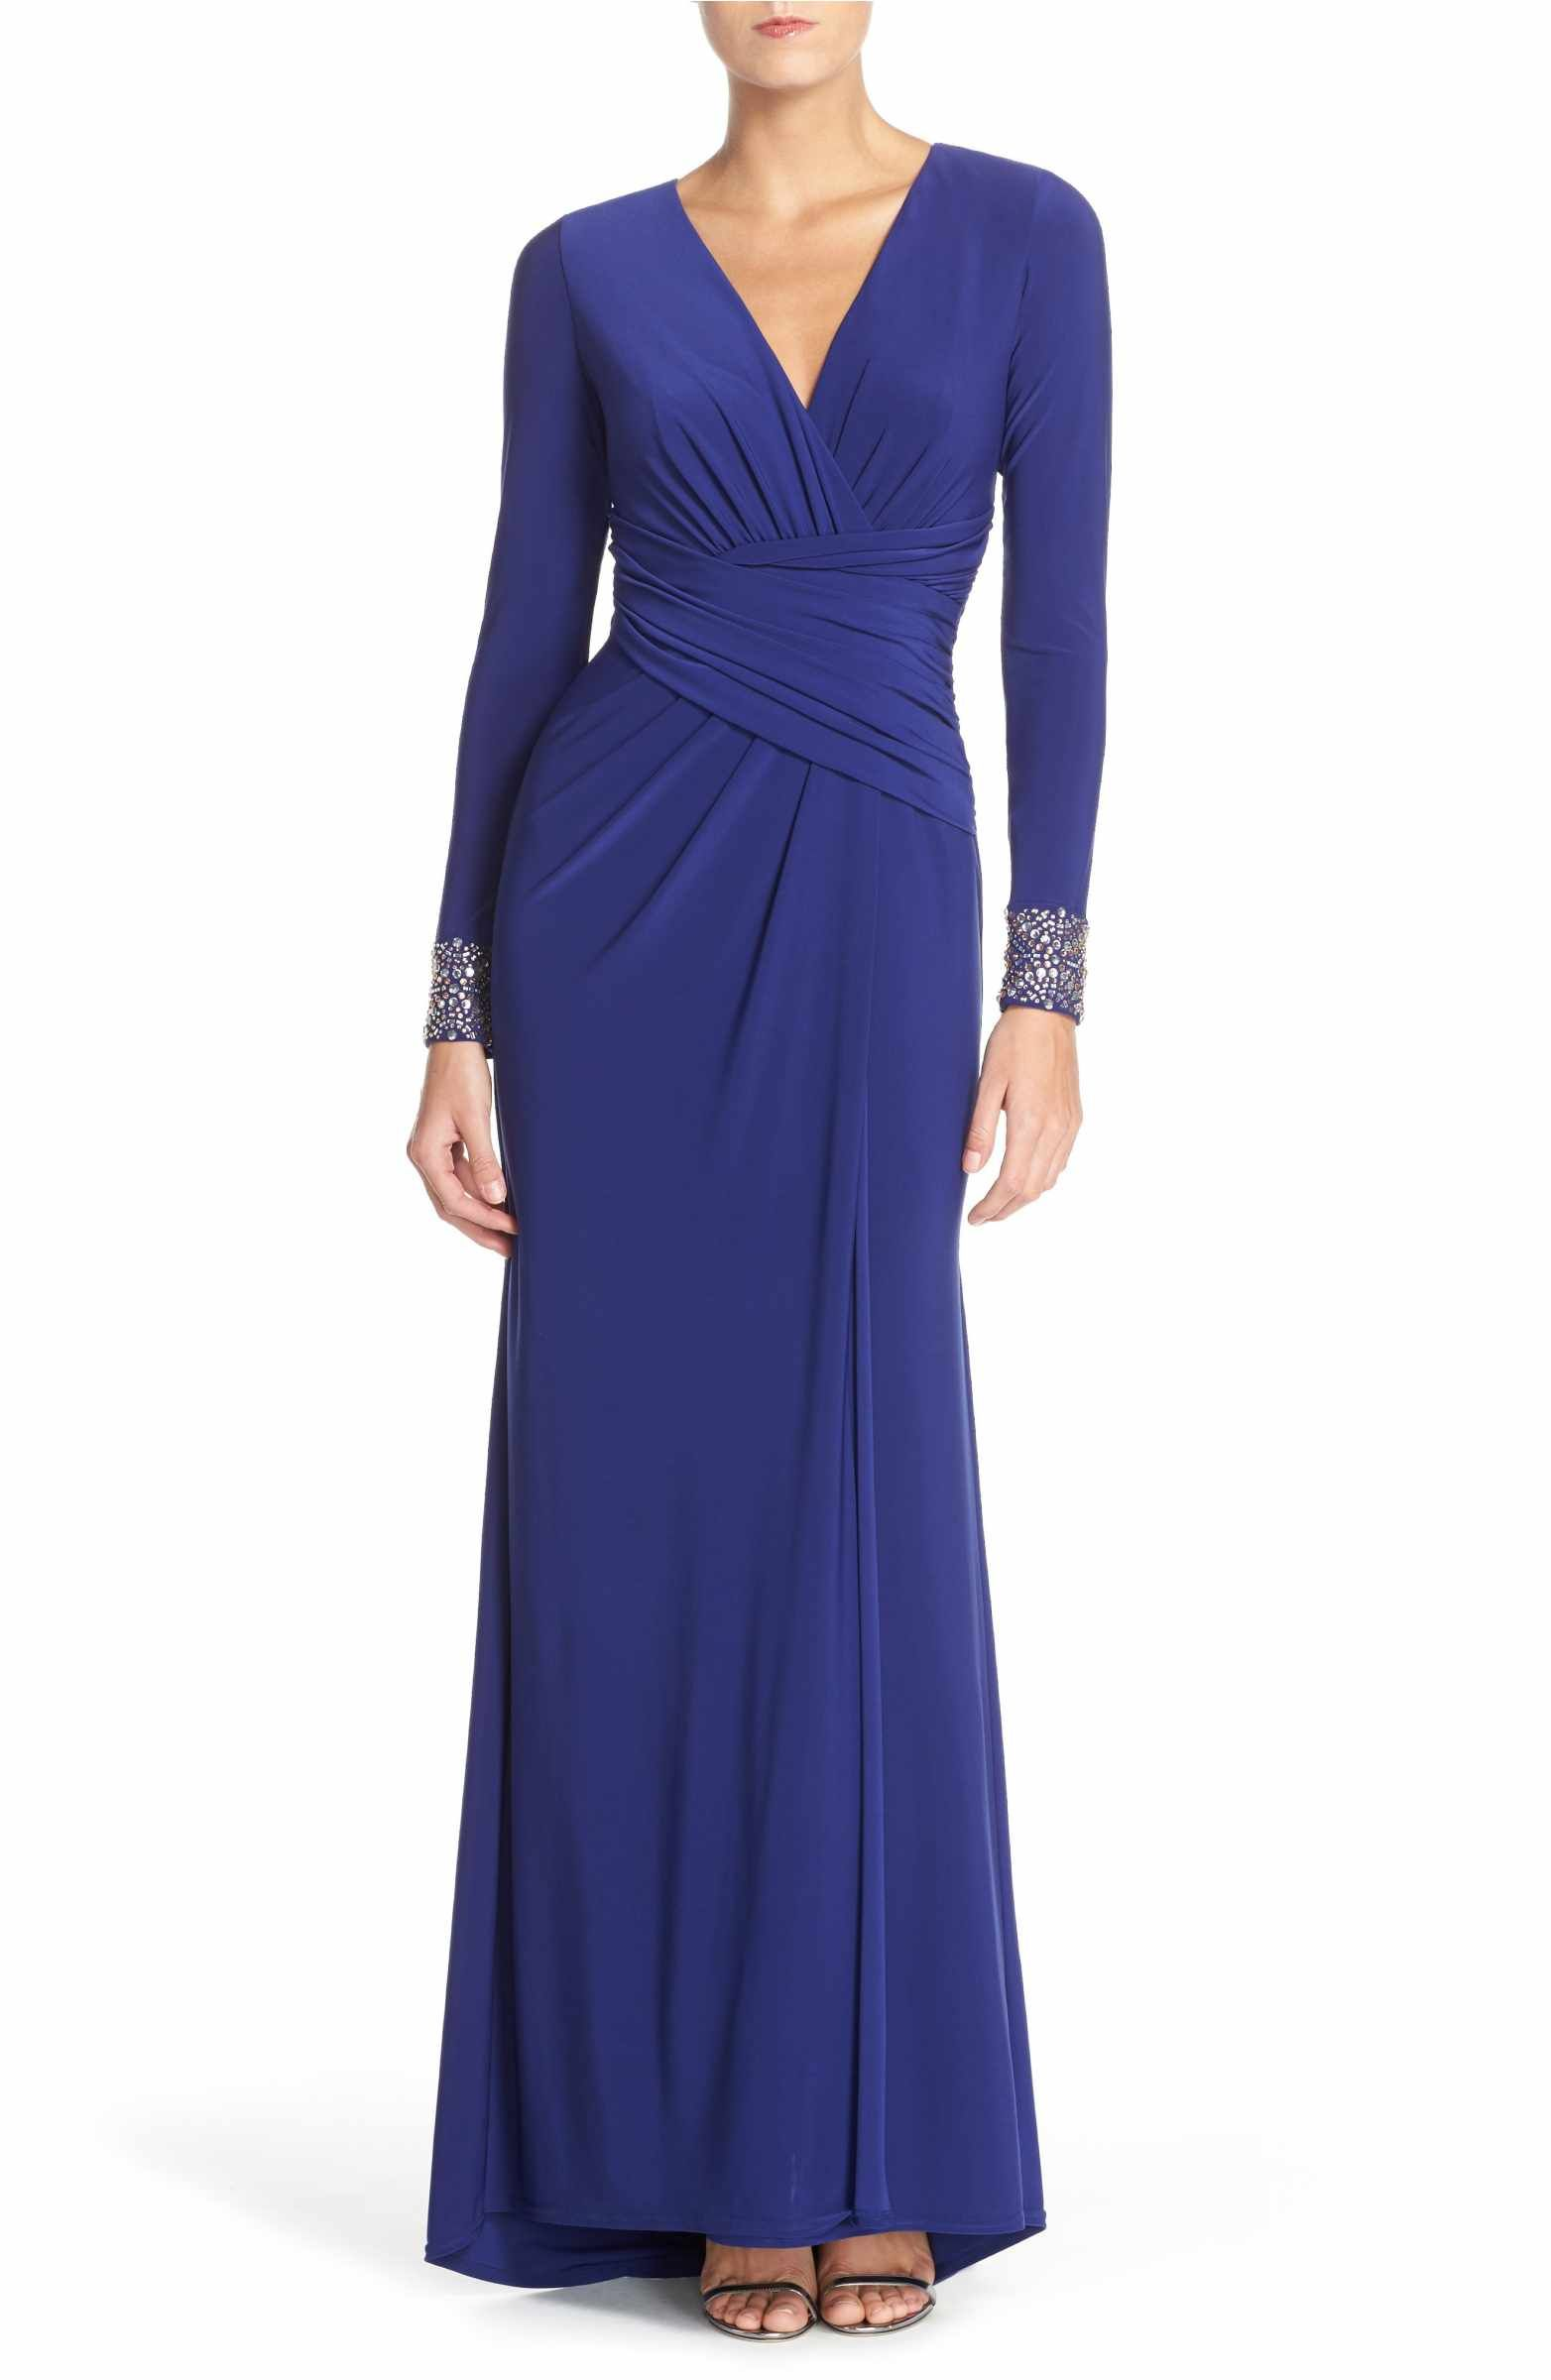 Mother of the groom dresses for outdoor wedding  Main Image  Vince Camuto Embellished Sleeve Jersey Gown  burgendy